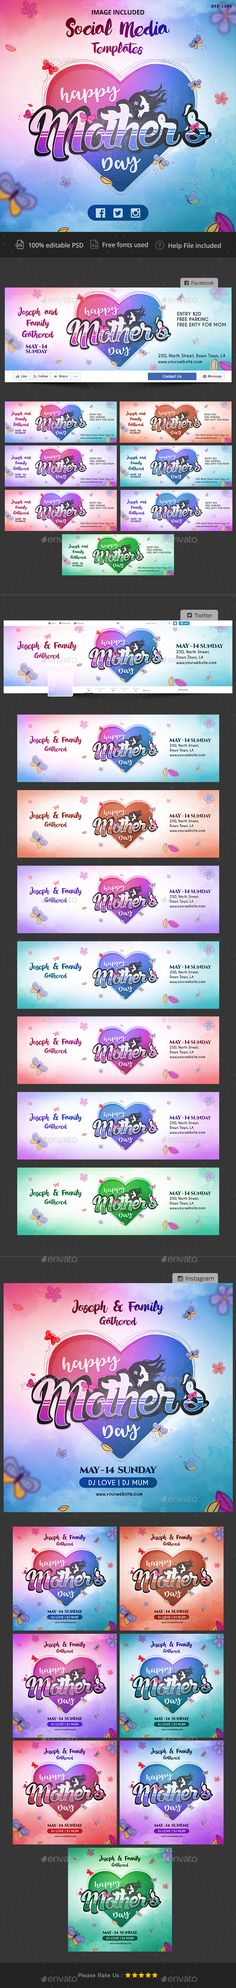 """Buy Mother's Day Social Media Pack - 7 Color Variations - Images Included by Hyov on GraphicRiver. Make a statement with this Social Media pack that puts you in the spotlight. Increase your number of """"Likes"""" and buil. Social Media Detox, Social Media Content, Social Media Graphics, Social Media Tips, Social Media Calendar, Social Media Branding, Website Template, New Friends, Cover Design"""